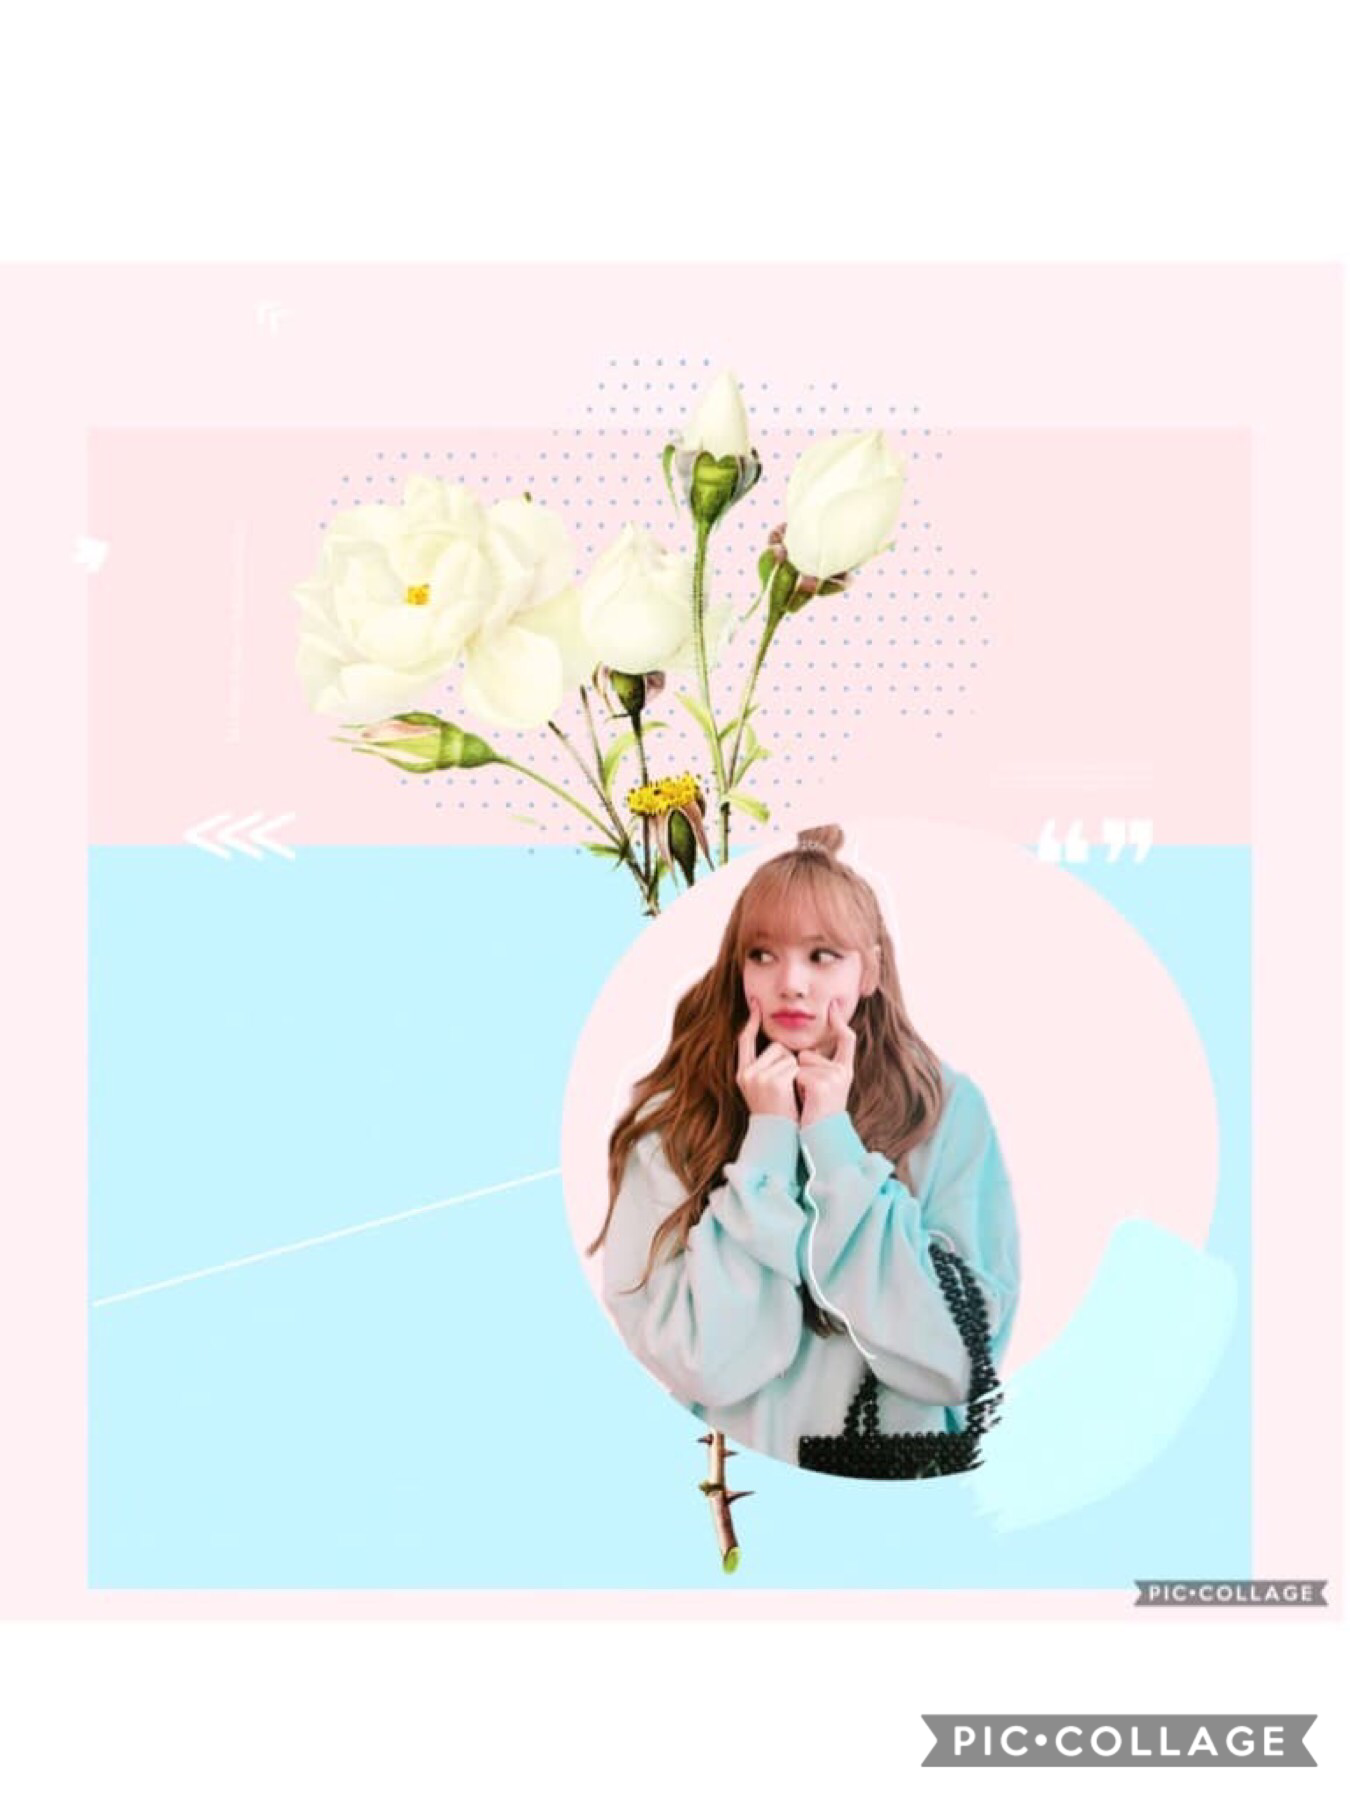 Ahhhh Lisa is so adorable!!! But I need to stay loyal to Jennie!! Ahh!! Hope you enjoy this edit!! Oh my daisies this caption is getting to long now hehe bye!!